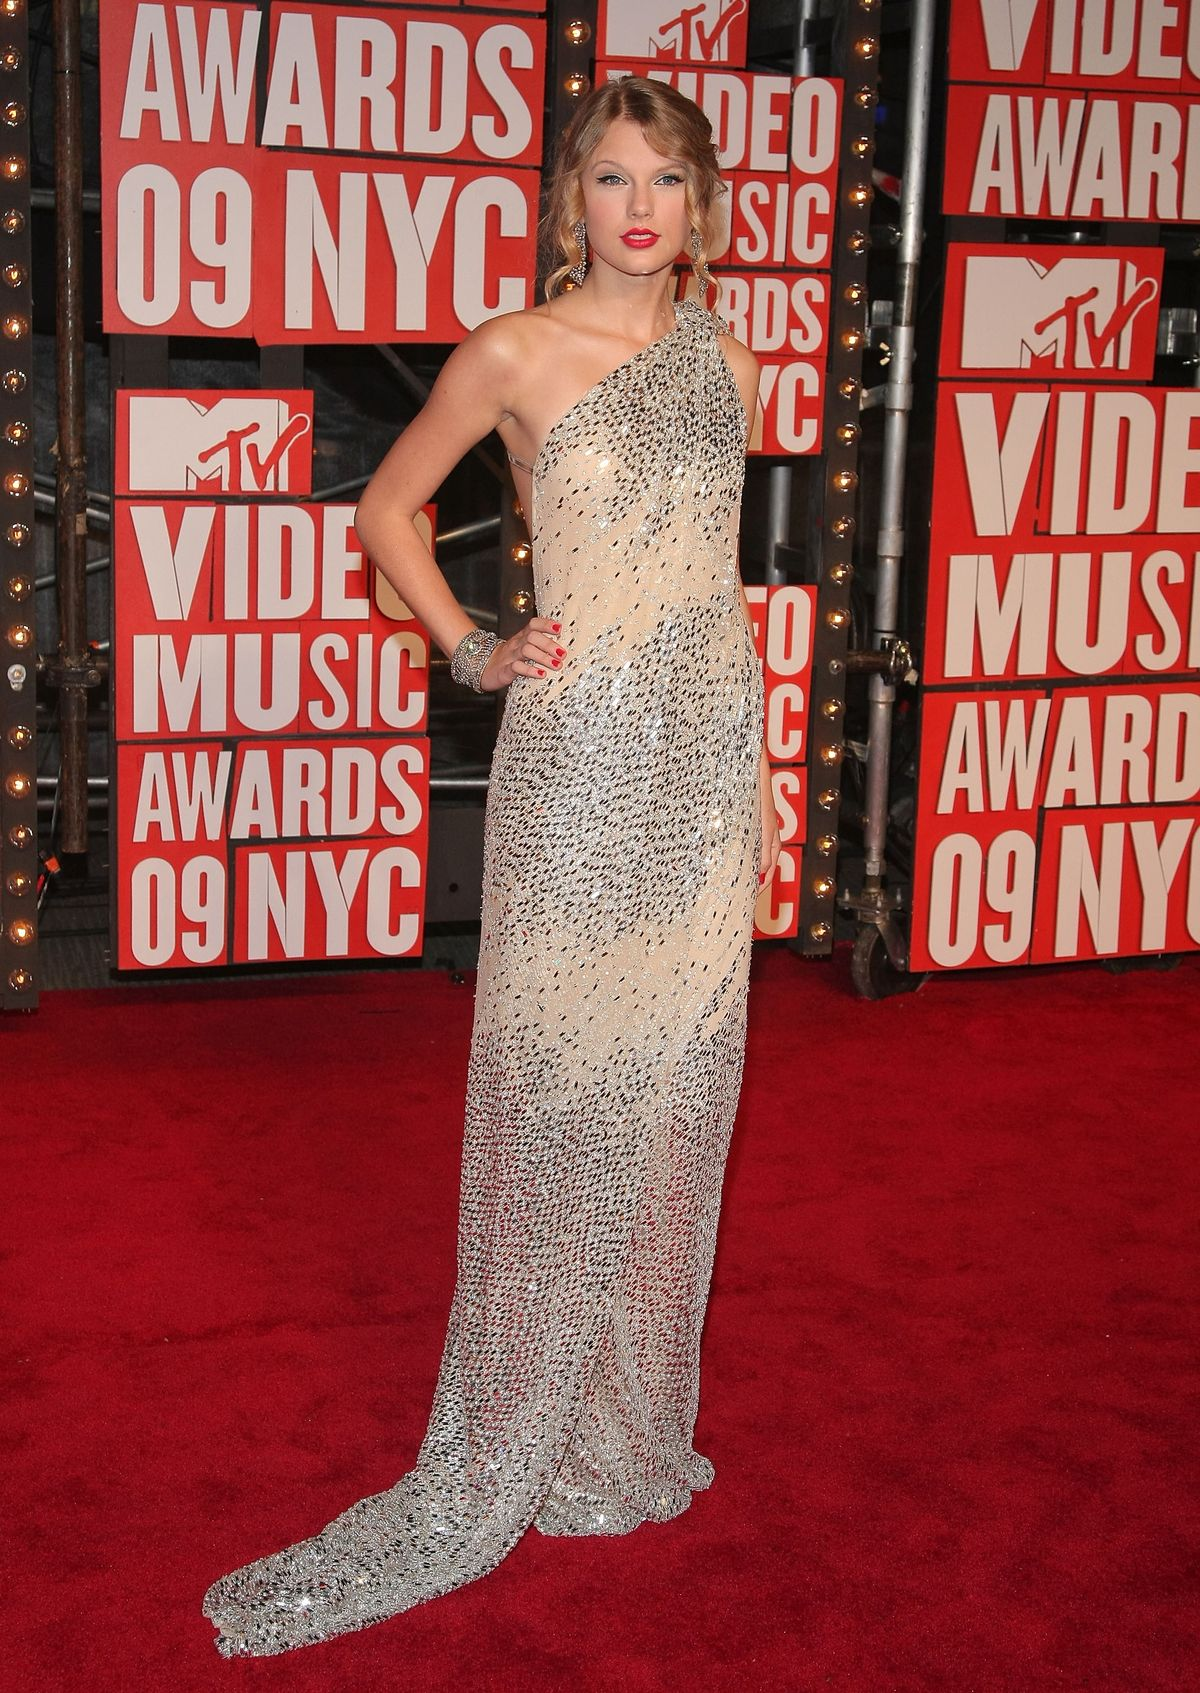 NEW YORK - SEPTEMBER 13:  Singer Taylor Swift arrives at the 2009 MTV Video Music Awards at Radio City Music Hall on September 13, 2009 in New York City.  (Photo by Michael Loccisano/Getty Images)